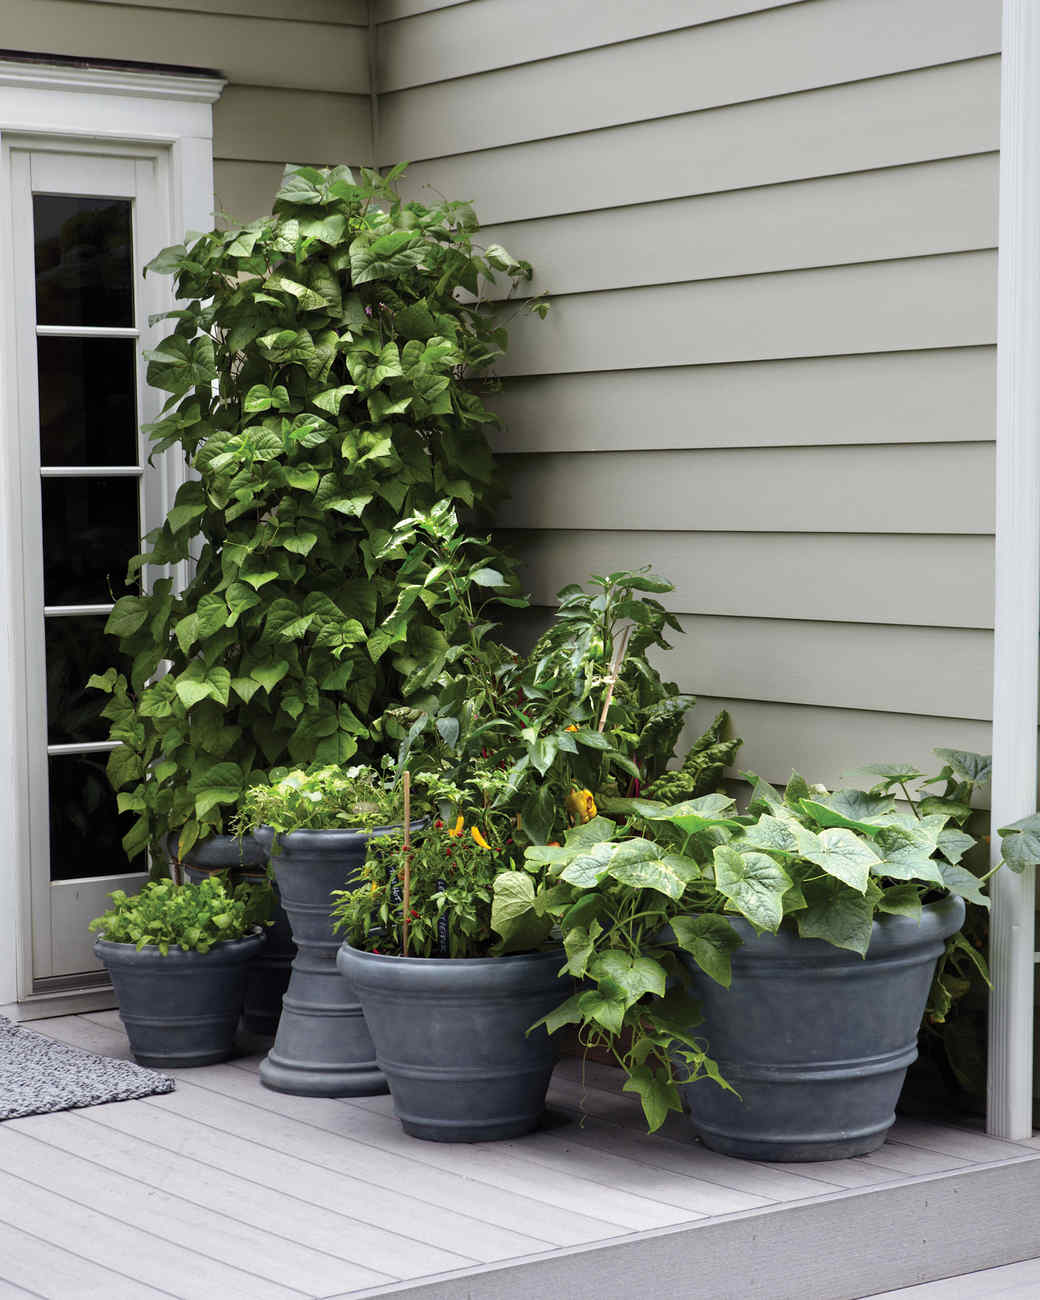 Small Space Garden Ideas Martha Stewart - Small-gardens-idea